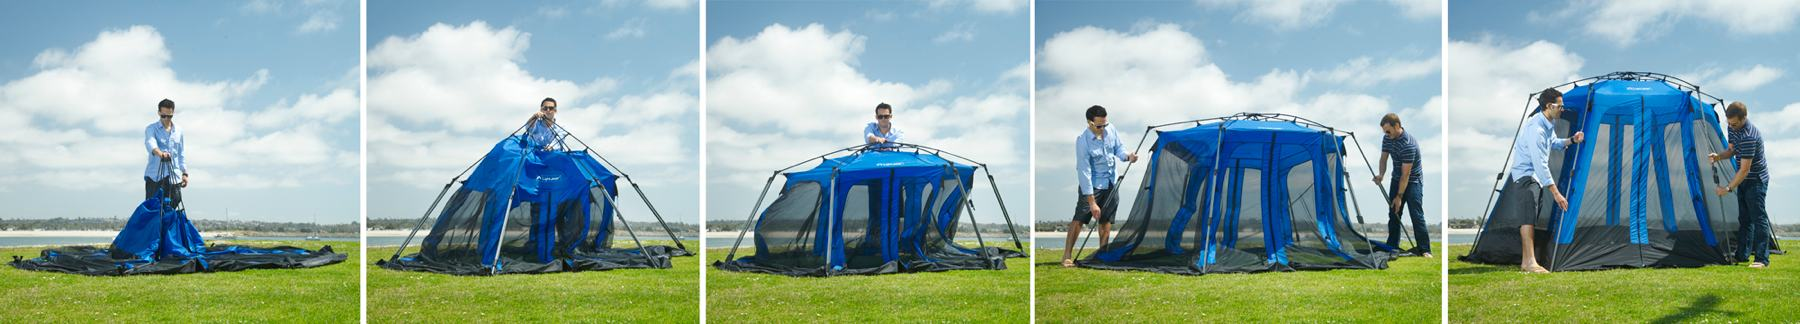 Amazon.com : Lightspeed Outdoors Screen House Pop Up Canopy, Blue ...